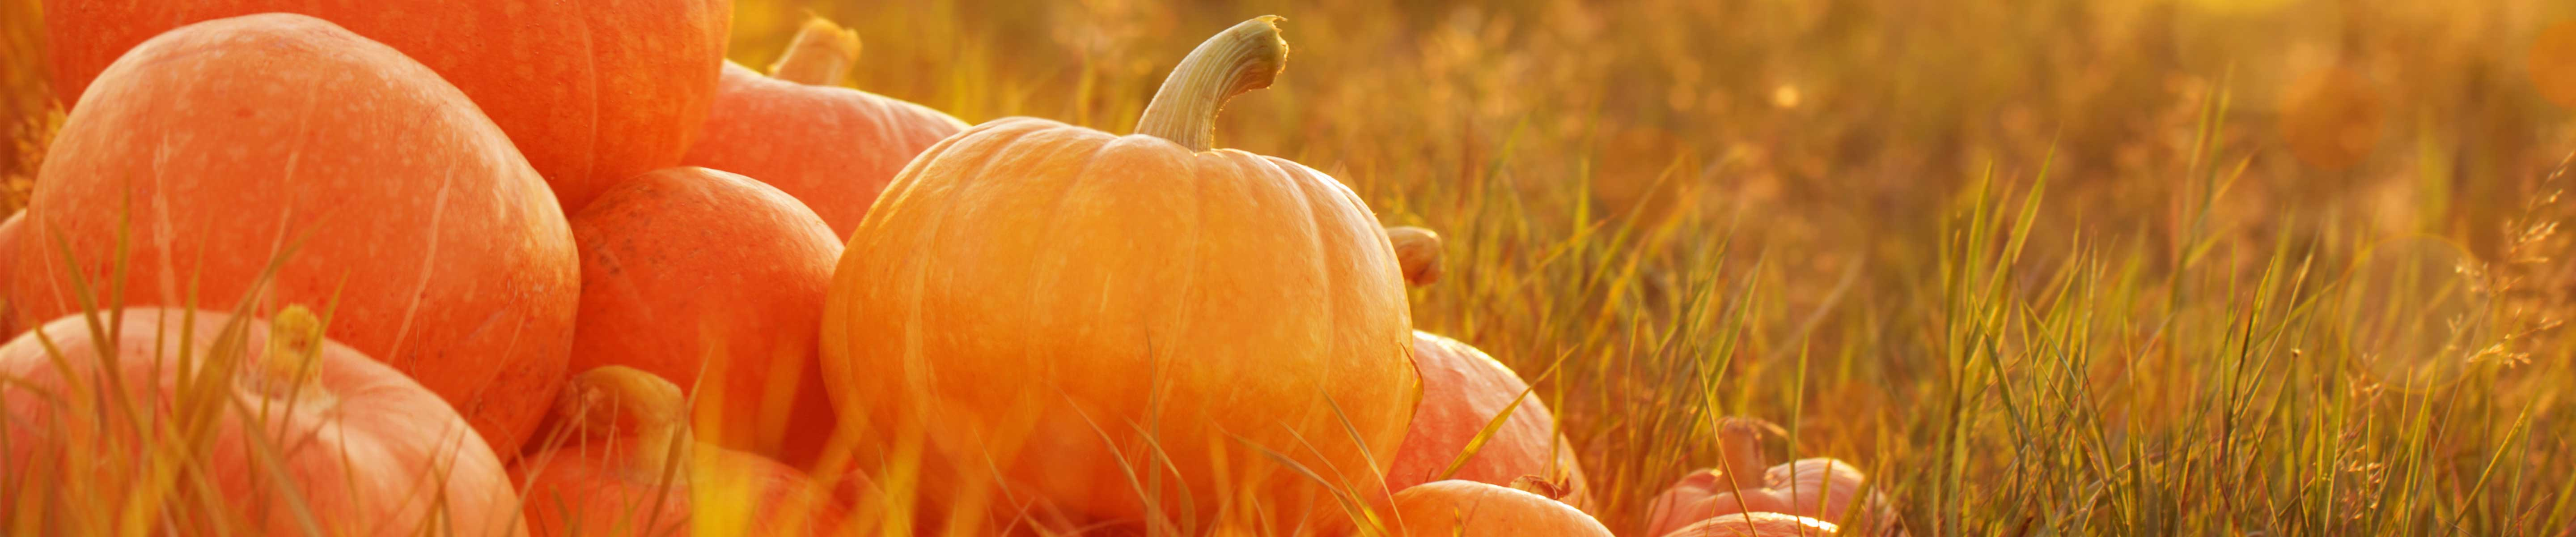 Pumpkins in the autumn - get outdoors this Halloween!